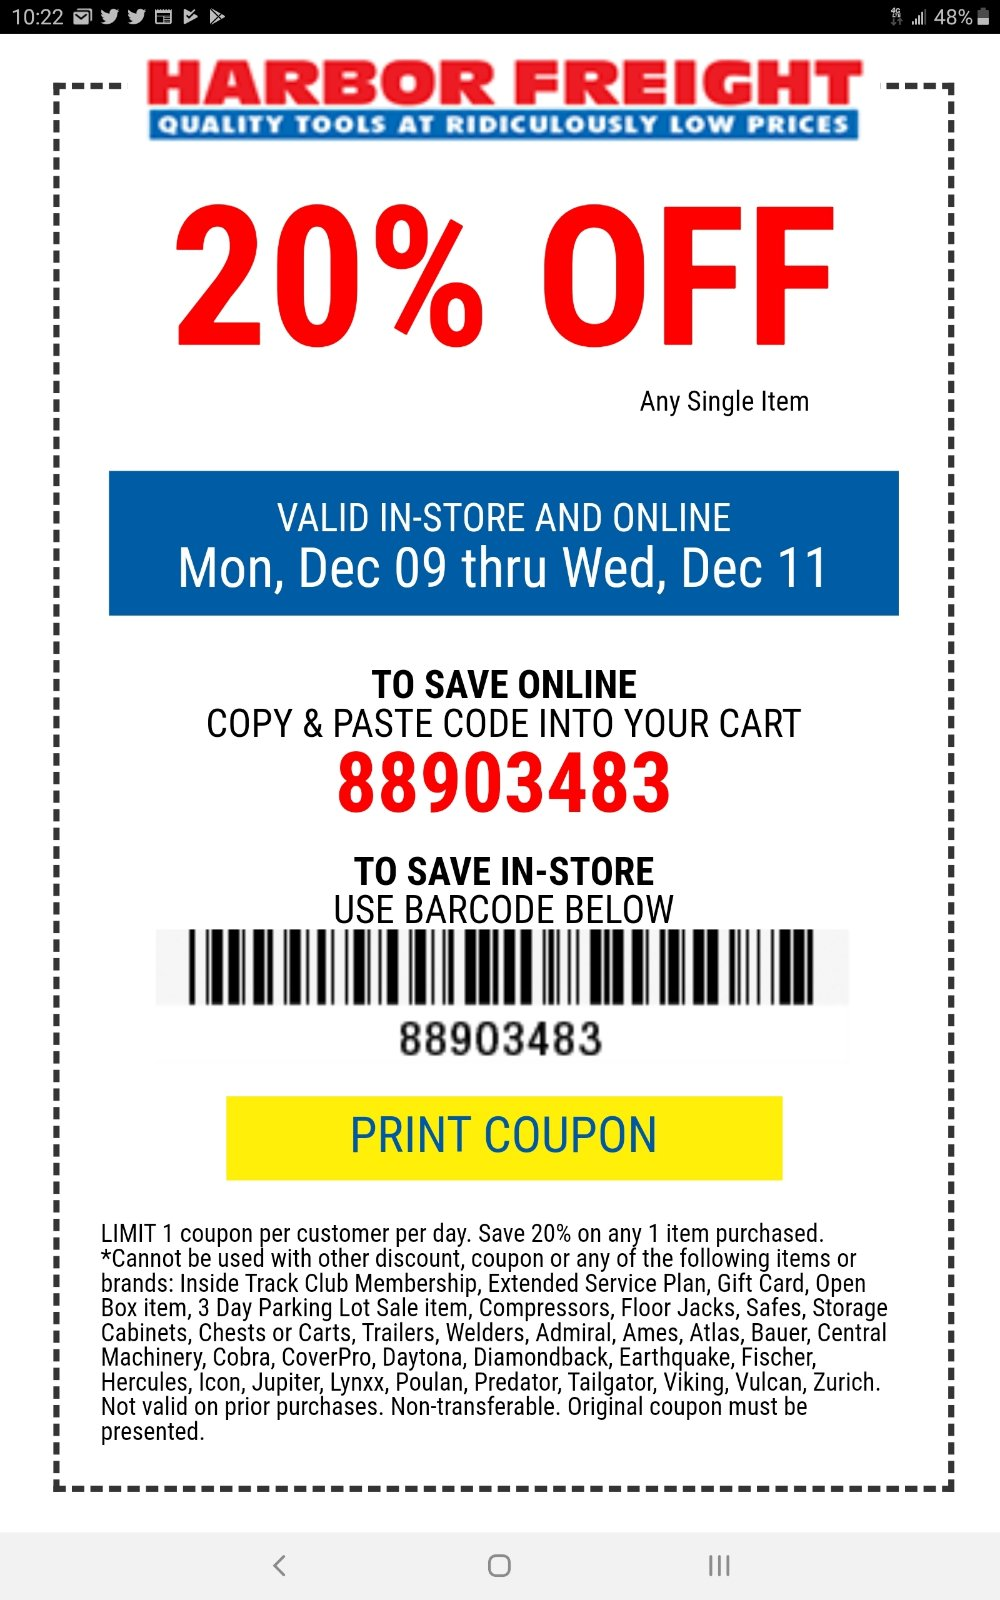 Harbor Freight Coupon, HF Coupons - 20% off = 88903483